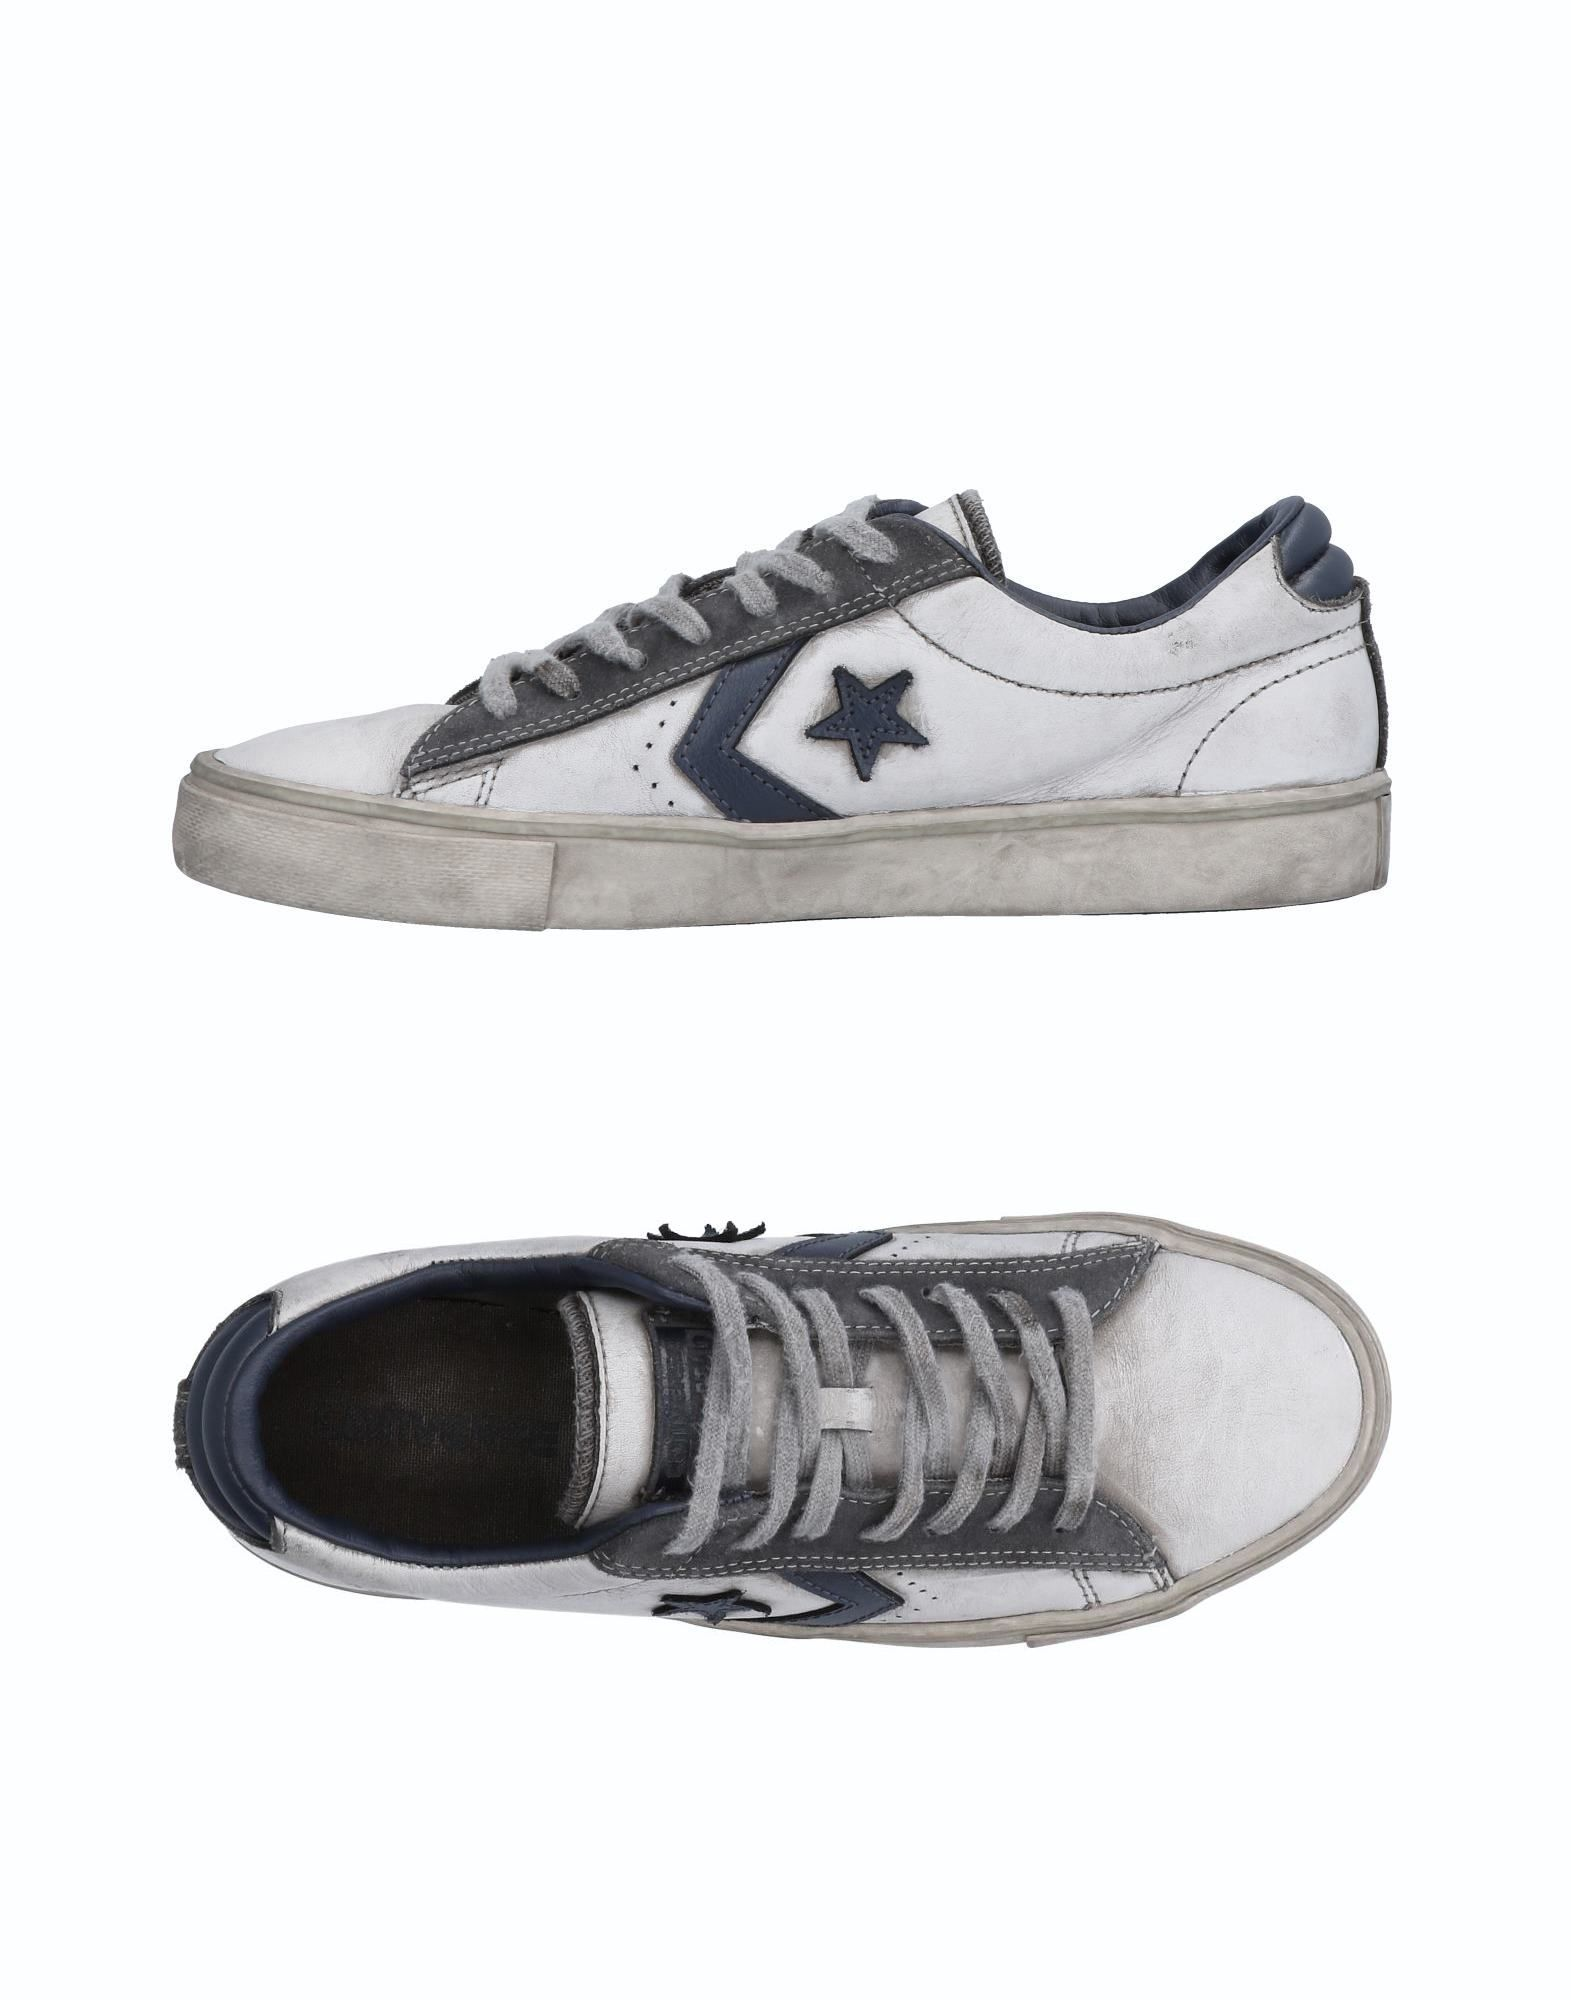 Baskets Converse Limited Edition Homme - baskets Converse Limited Edition   - 11502619IG